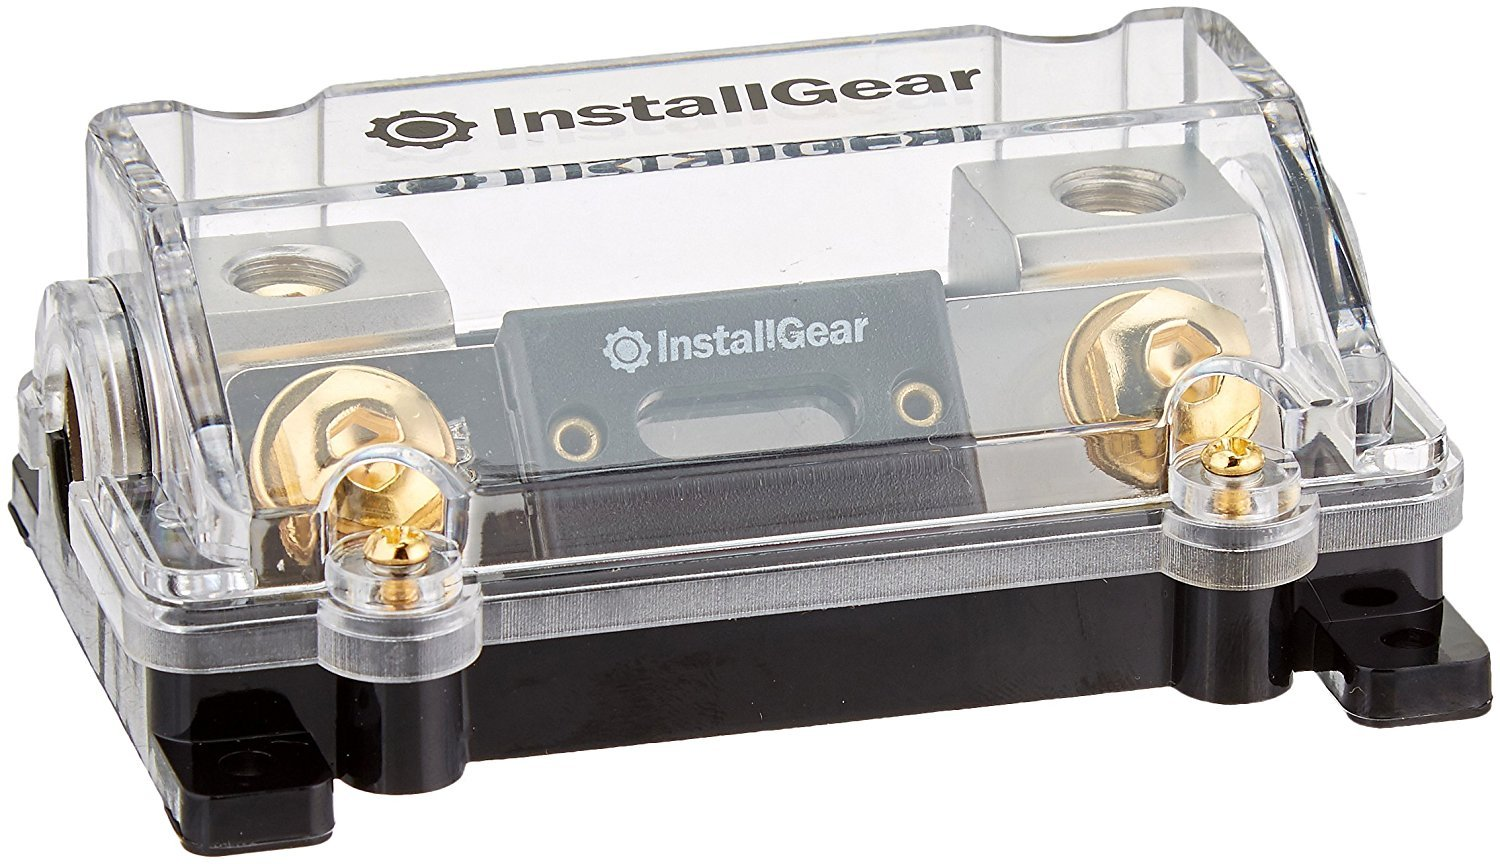 InstallGear 0//2//4 Gauge AWG In-Line ANL Fuse Holder with 300 Amp Fuse